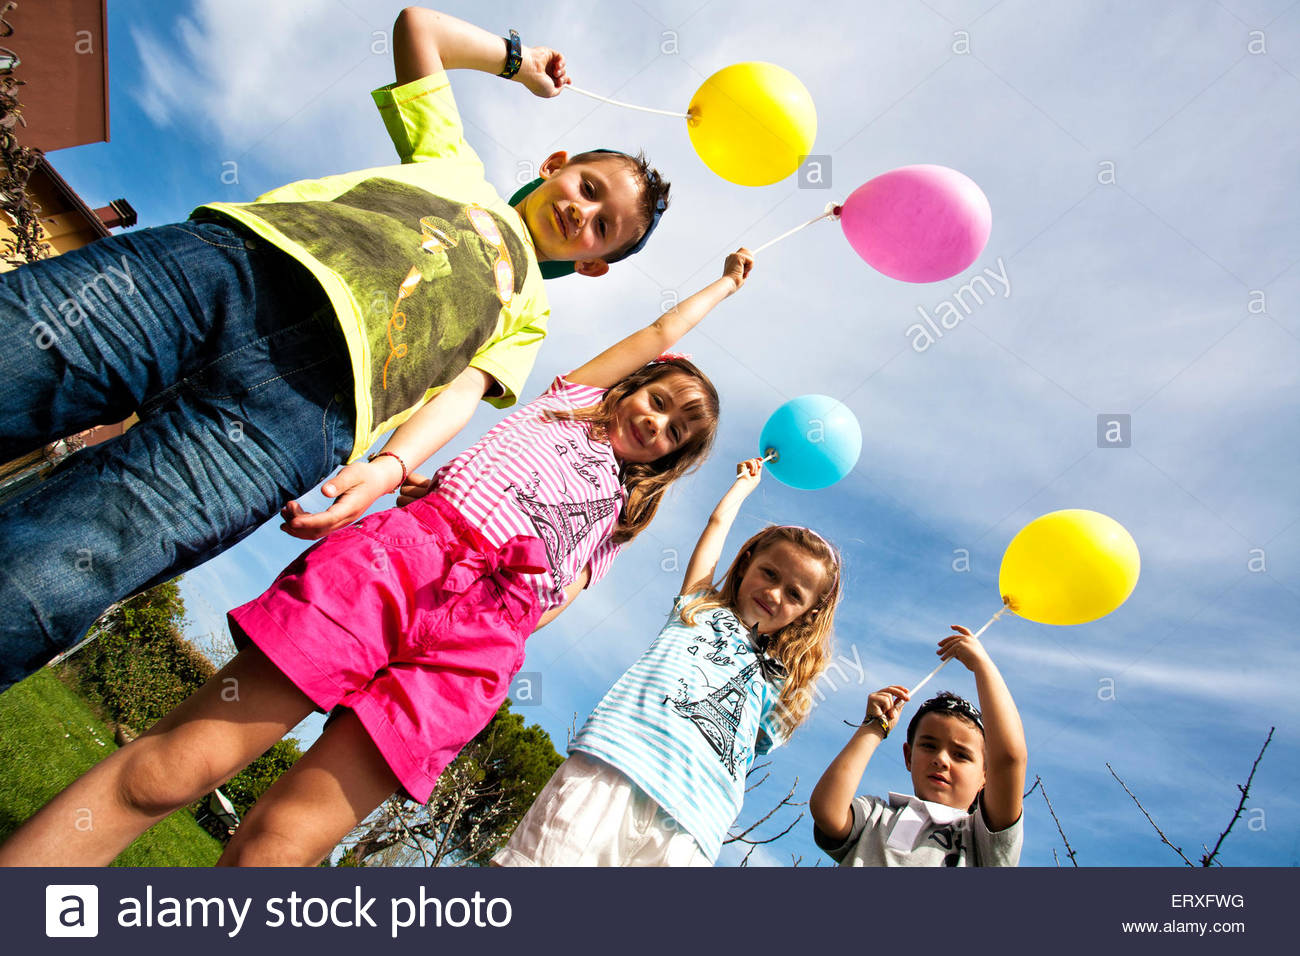 children with multi coloured balloon - Stock Image